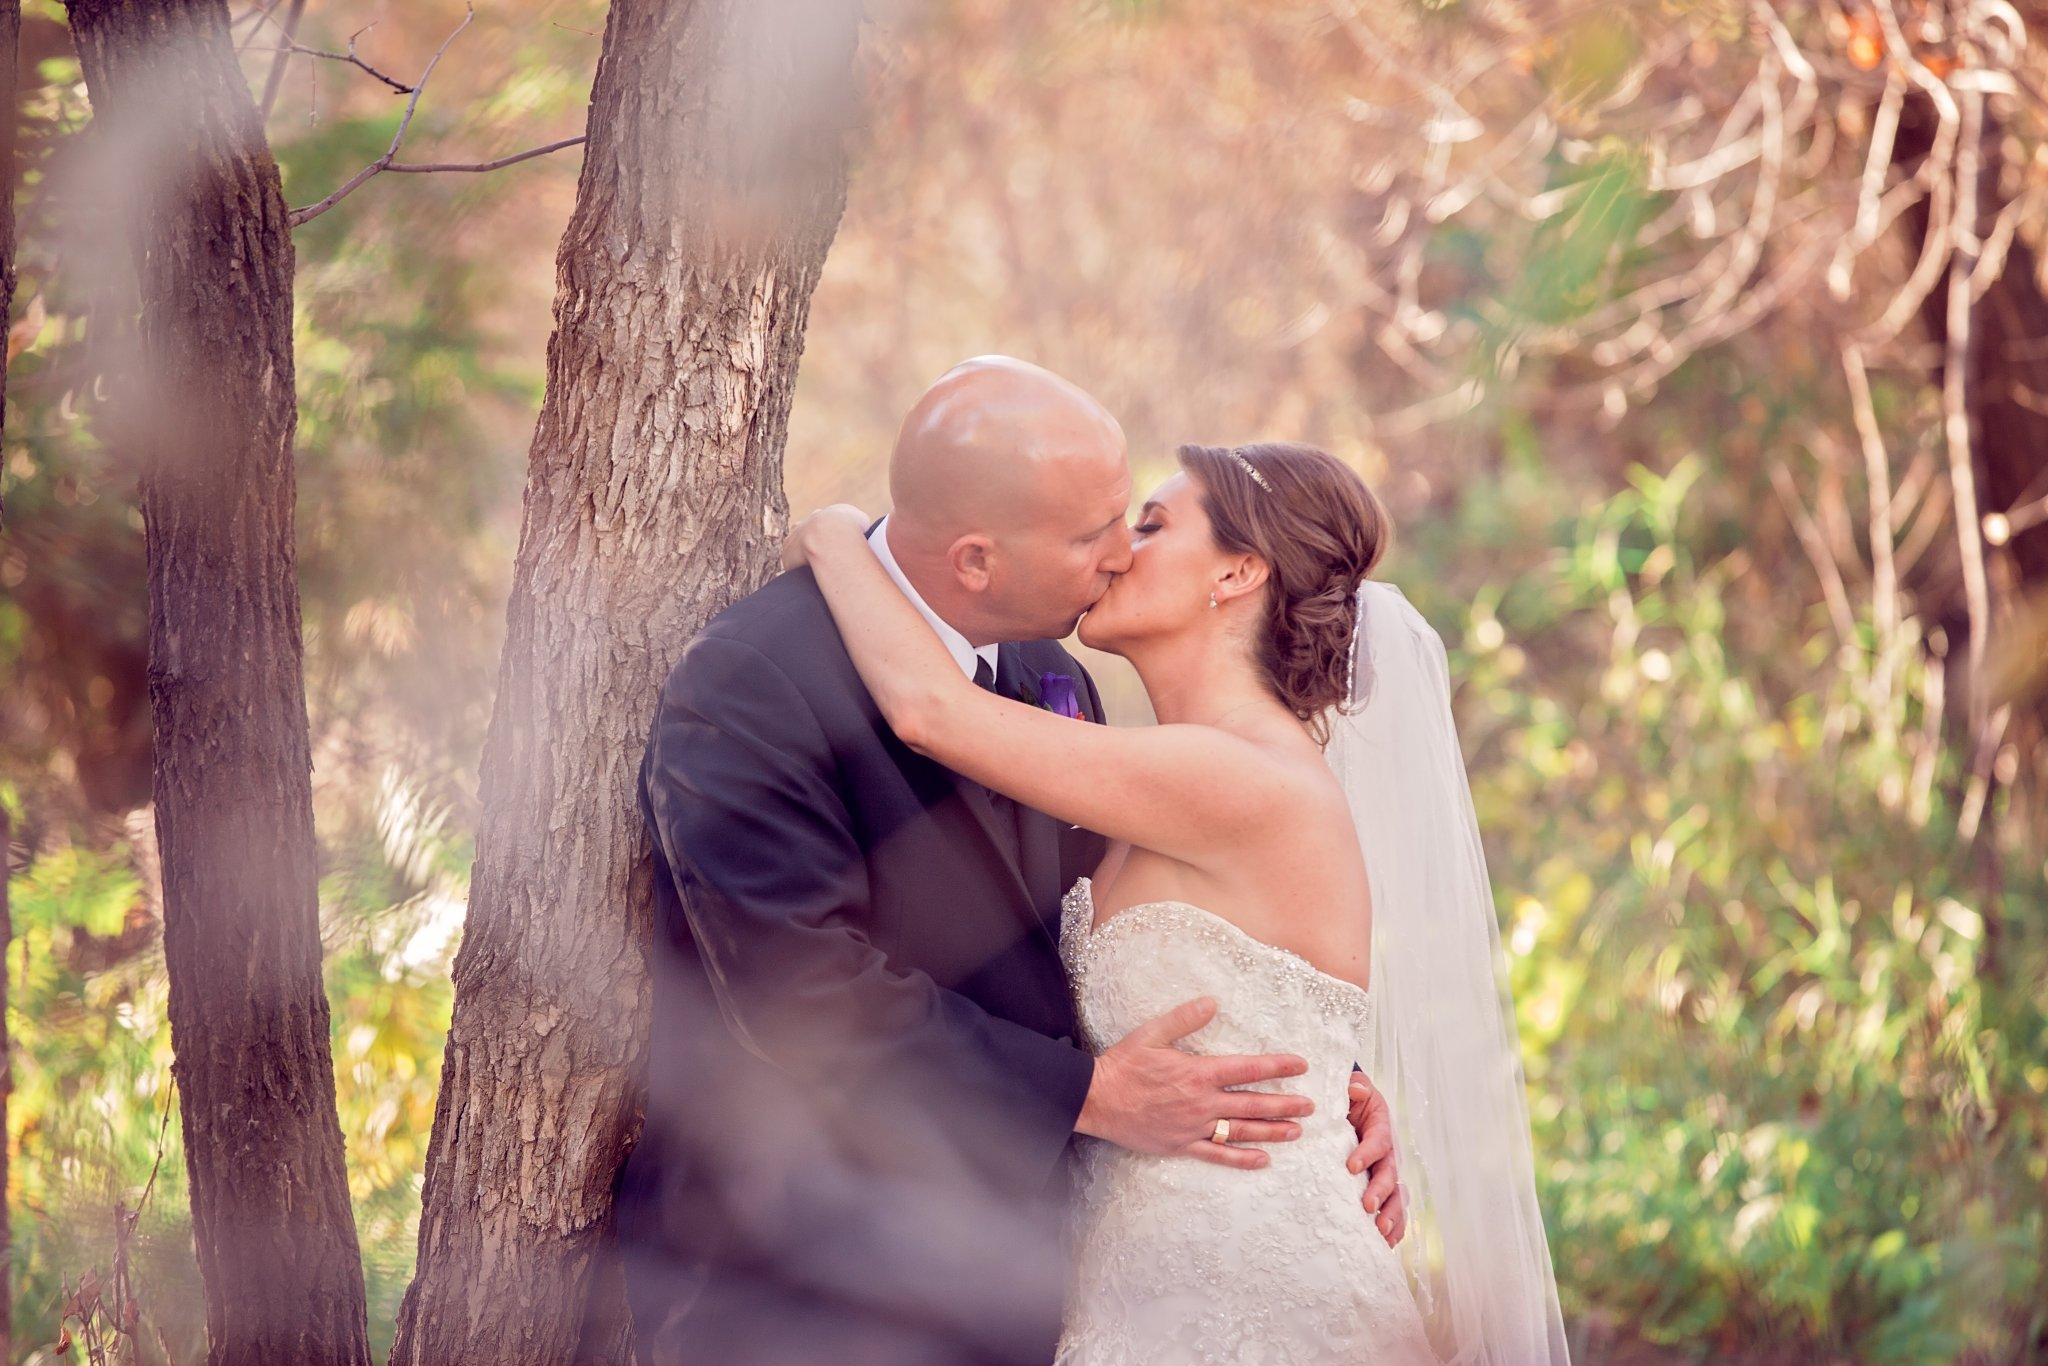 Brooke & Steven | Elegant Exposures Photography